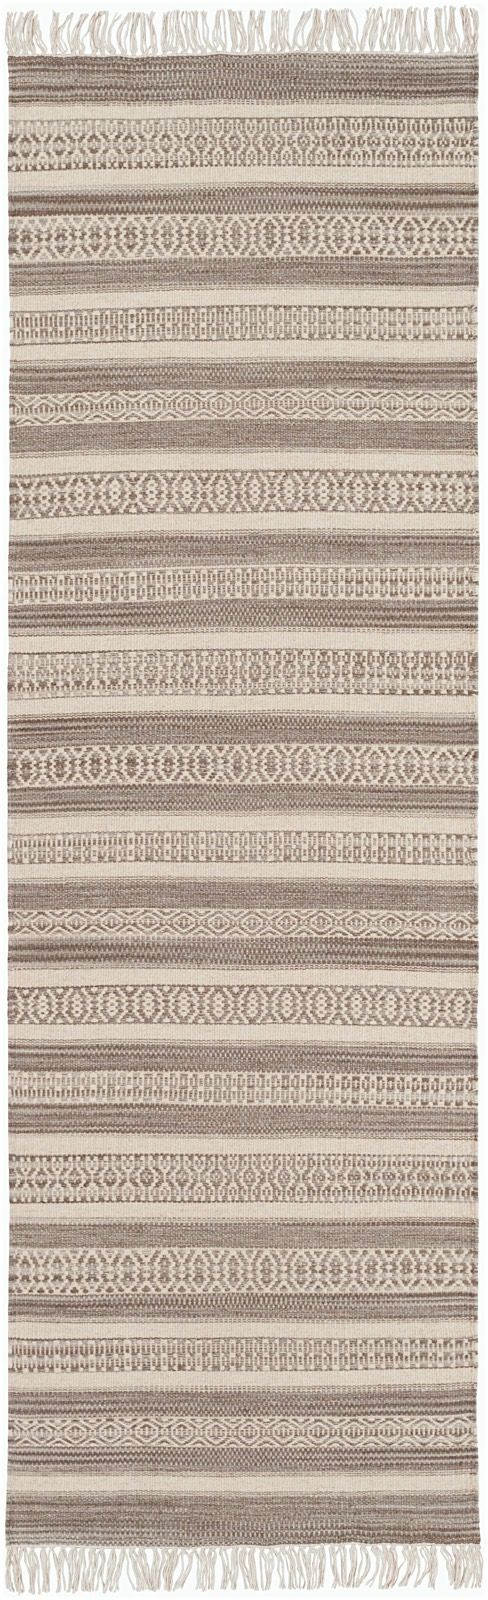 surya lawry southwestern/lodge area rug collection